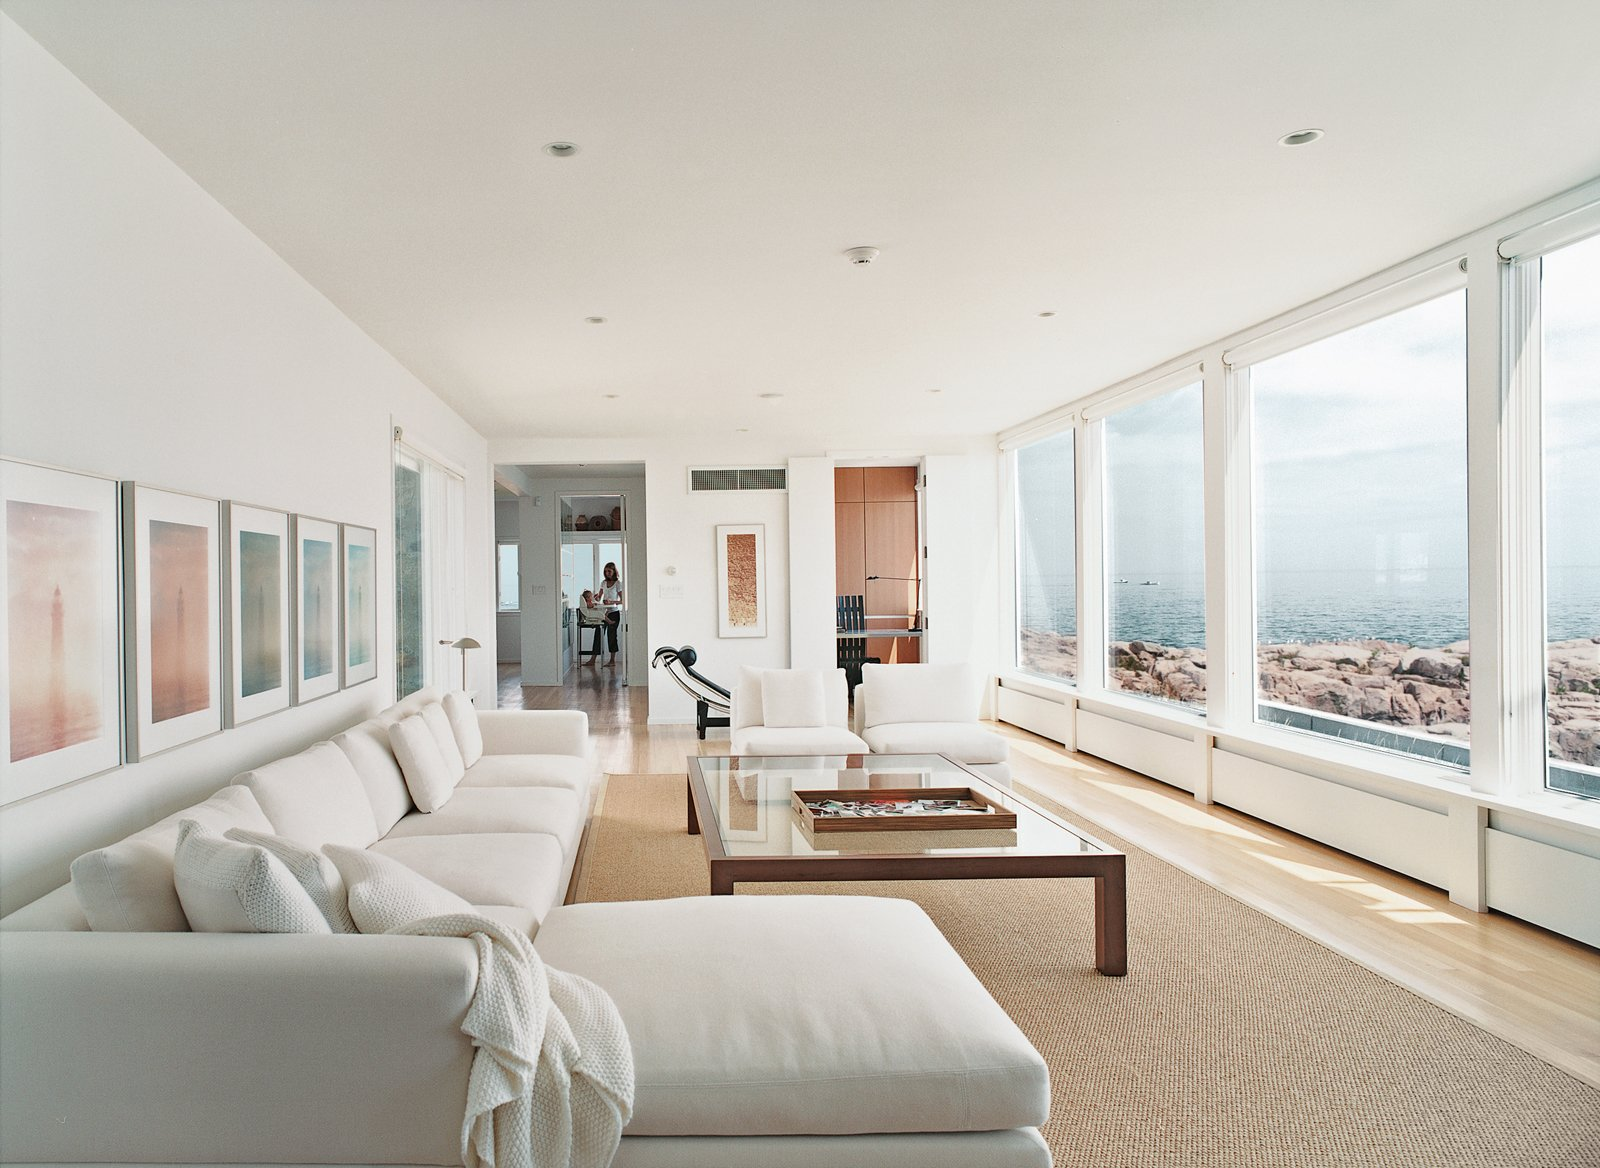 In the living room, there's a black leather Le Corbusier lounge and a Minotti sofa set.  Photo 1 of 8 in Bauhaus by the Sea